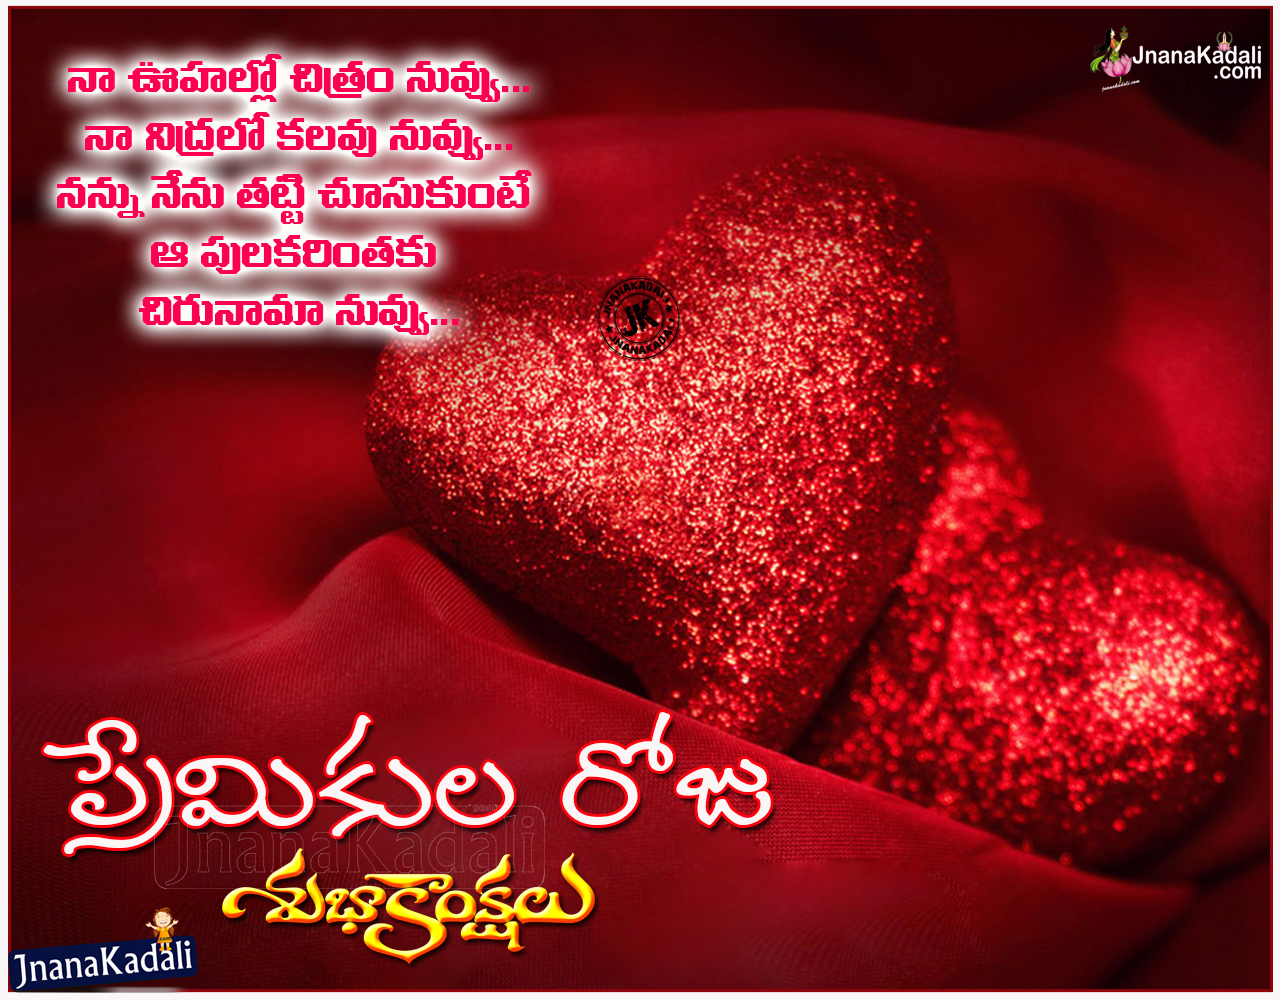 Nice telugu valentines day wishes with love quotes jnana kadali nice telugu valentines day wishes with love quotestelugu beautiful love quotes for valentines day best valentines day telugu love messages and pictures kristyandbryce Image collections